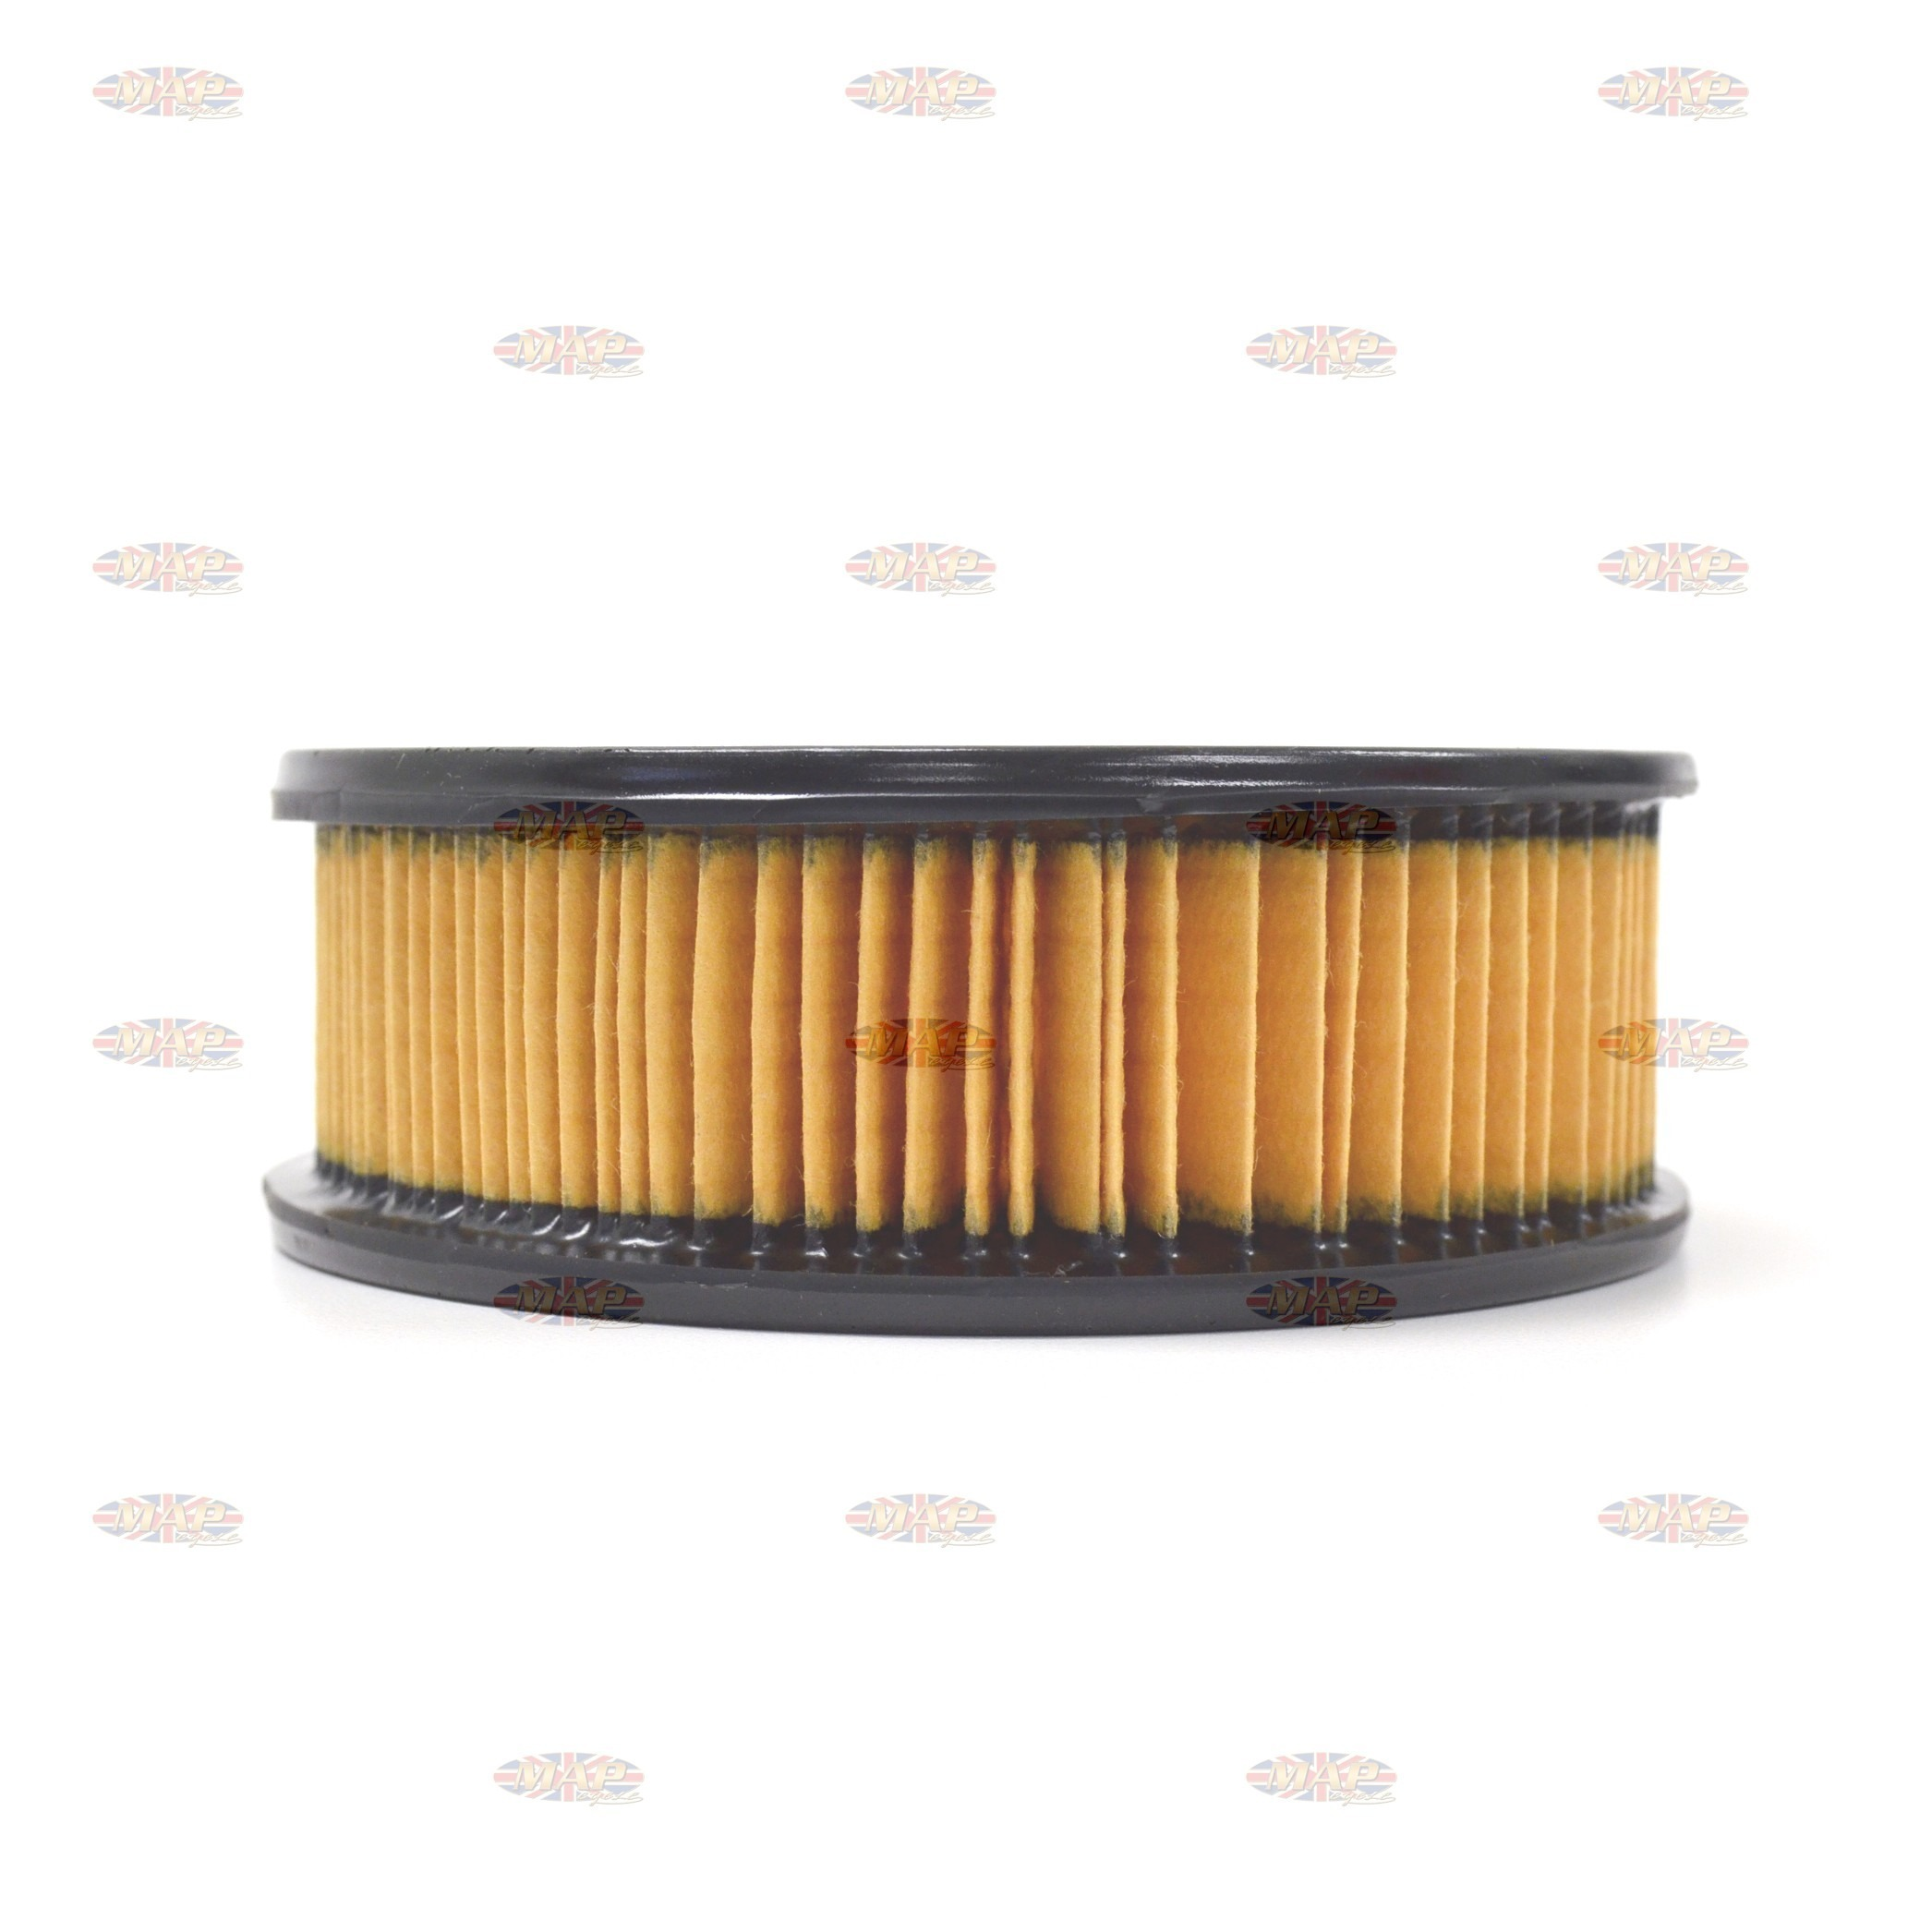 Round Air Filter Paper : Element air filter round paper uk